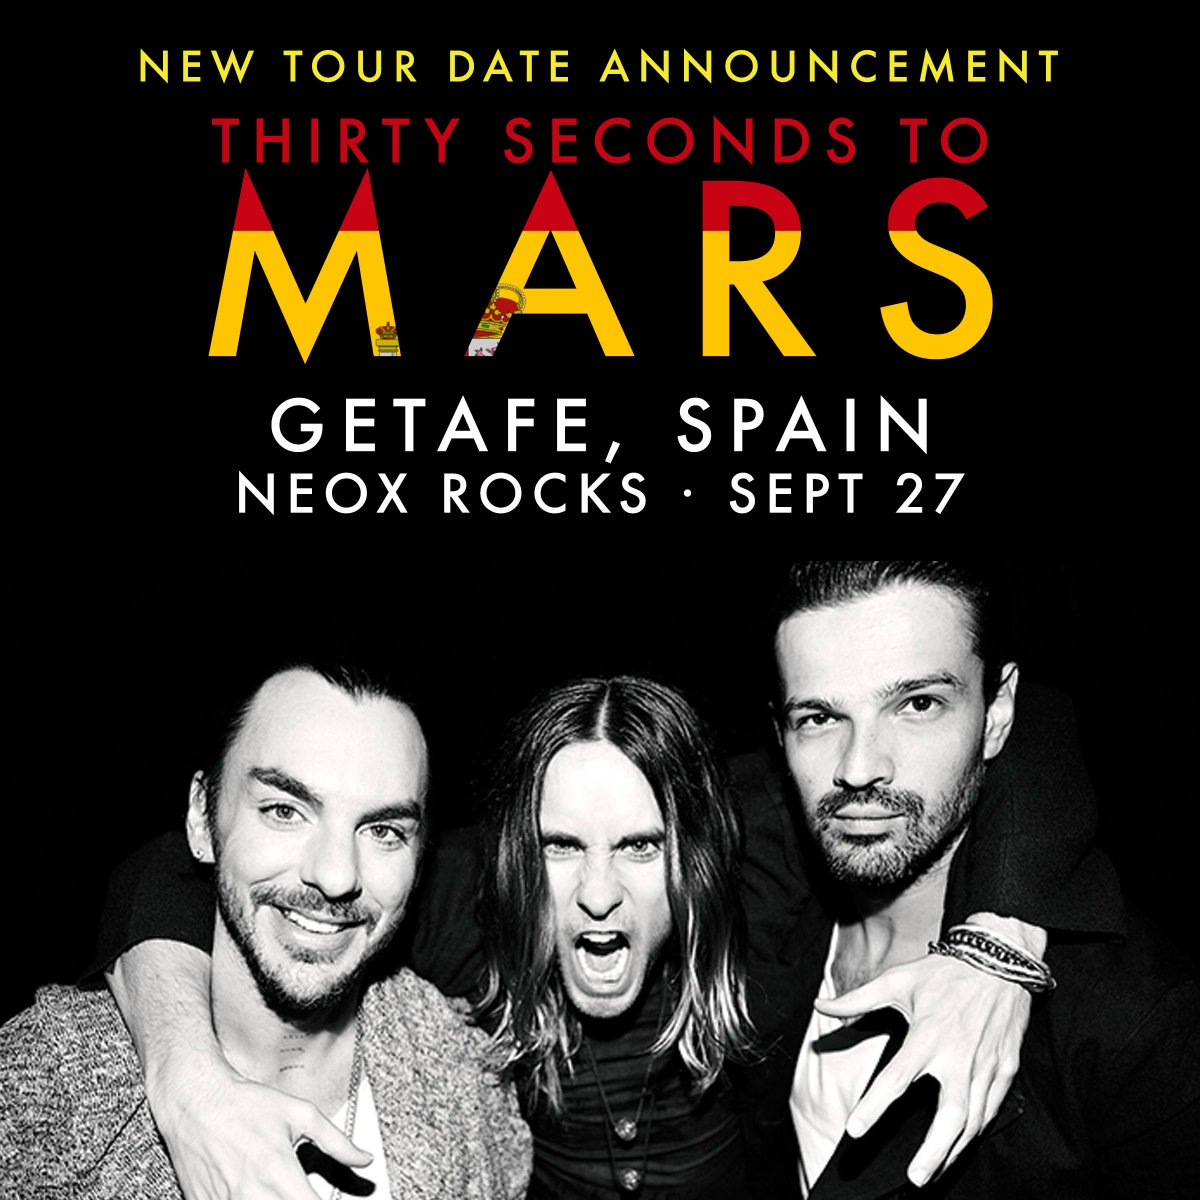 See you soon, SPAIN. #MARSISCOMING   Tix: http://t.co/yWMDgXHPeF  VIP: http://t.co/3M1mIw2XNo http://t.co/EtRxKIaRH6